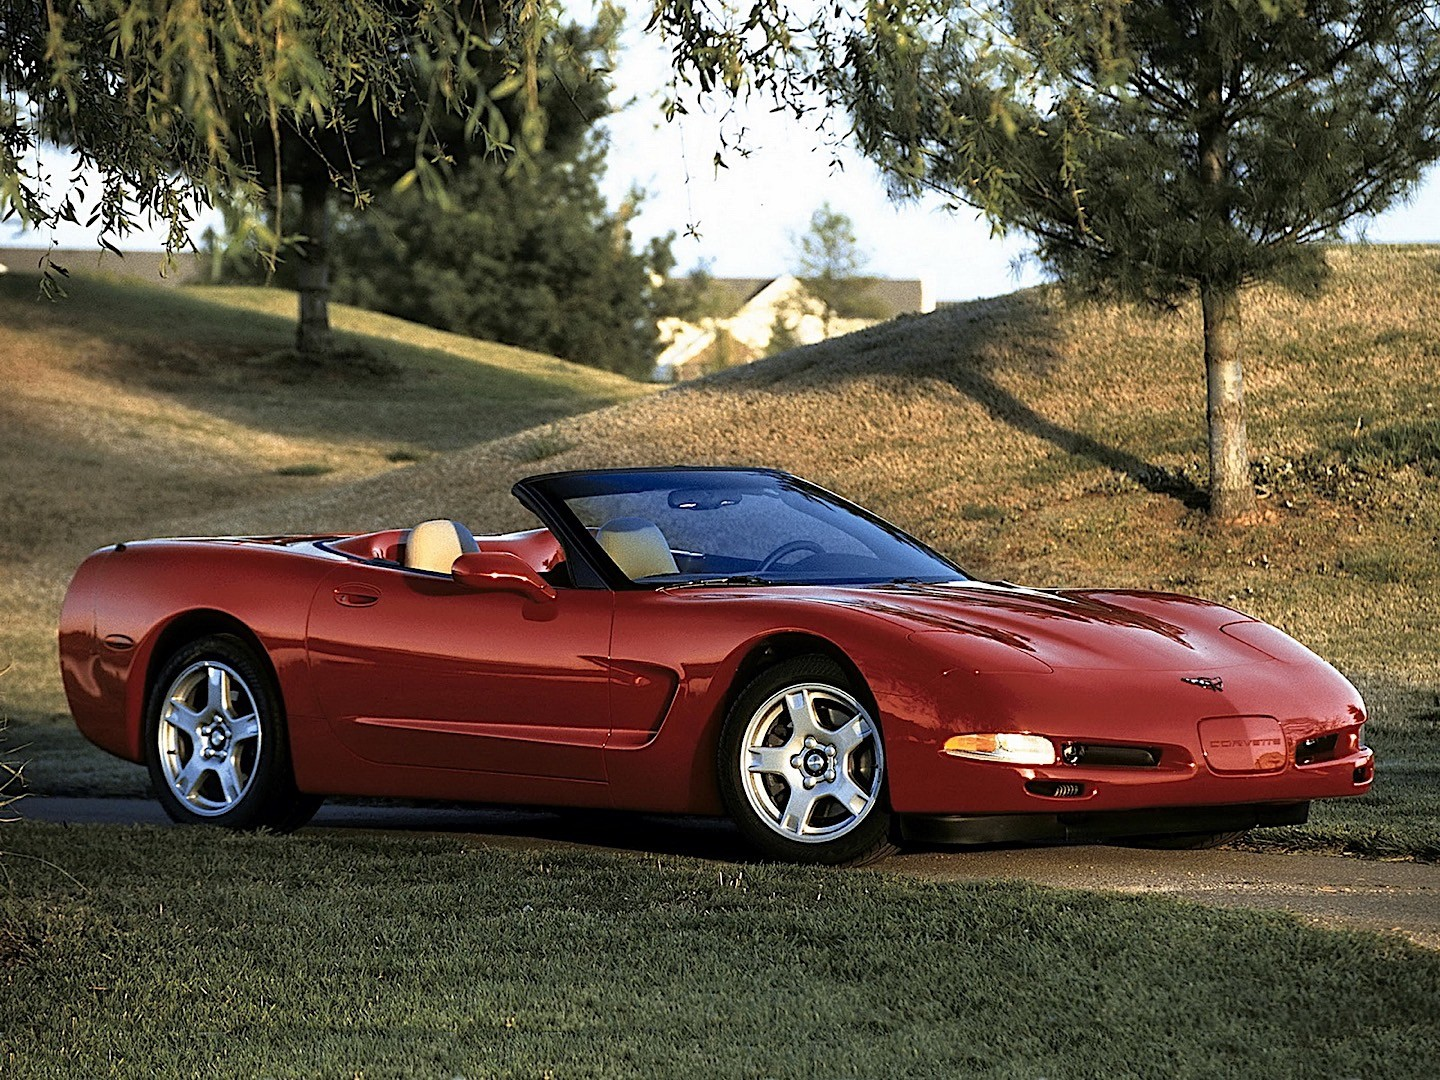 chevrolet corvette c5 convertible specs photos 1998 1999 2000 2001 2002 2003 2004. Black Bedroom Furniture Sets. Home Design Ideas